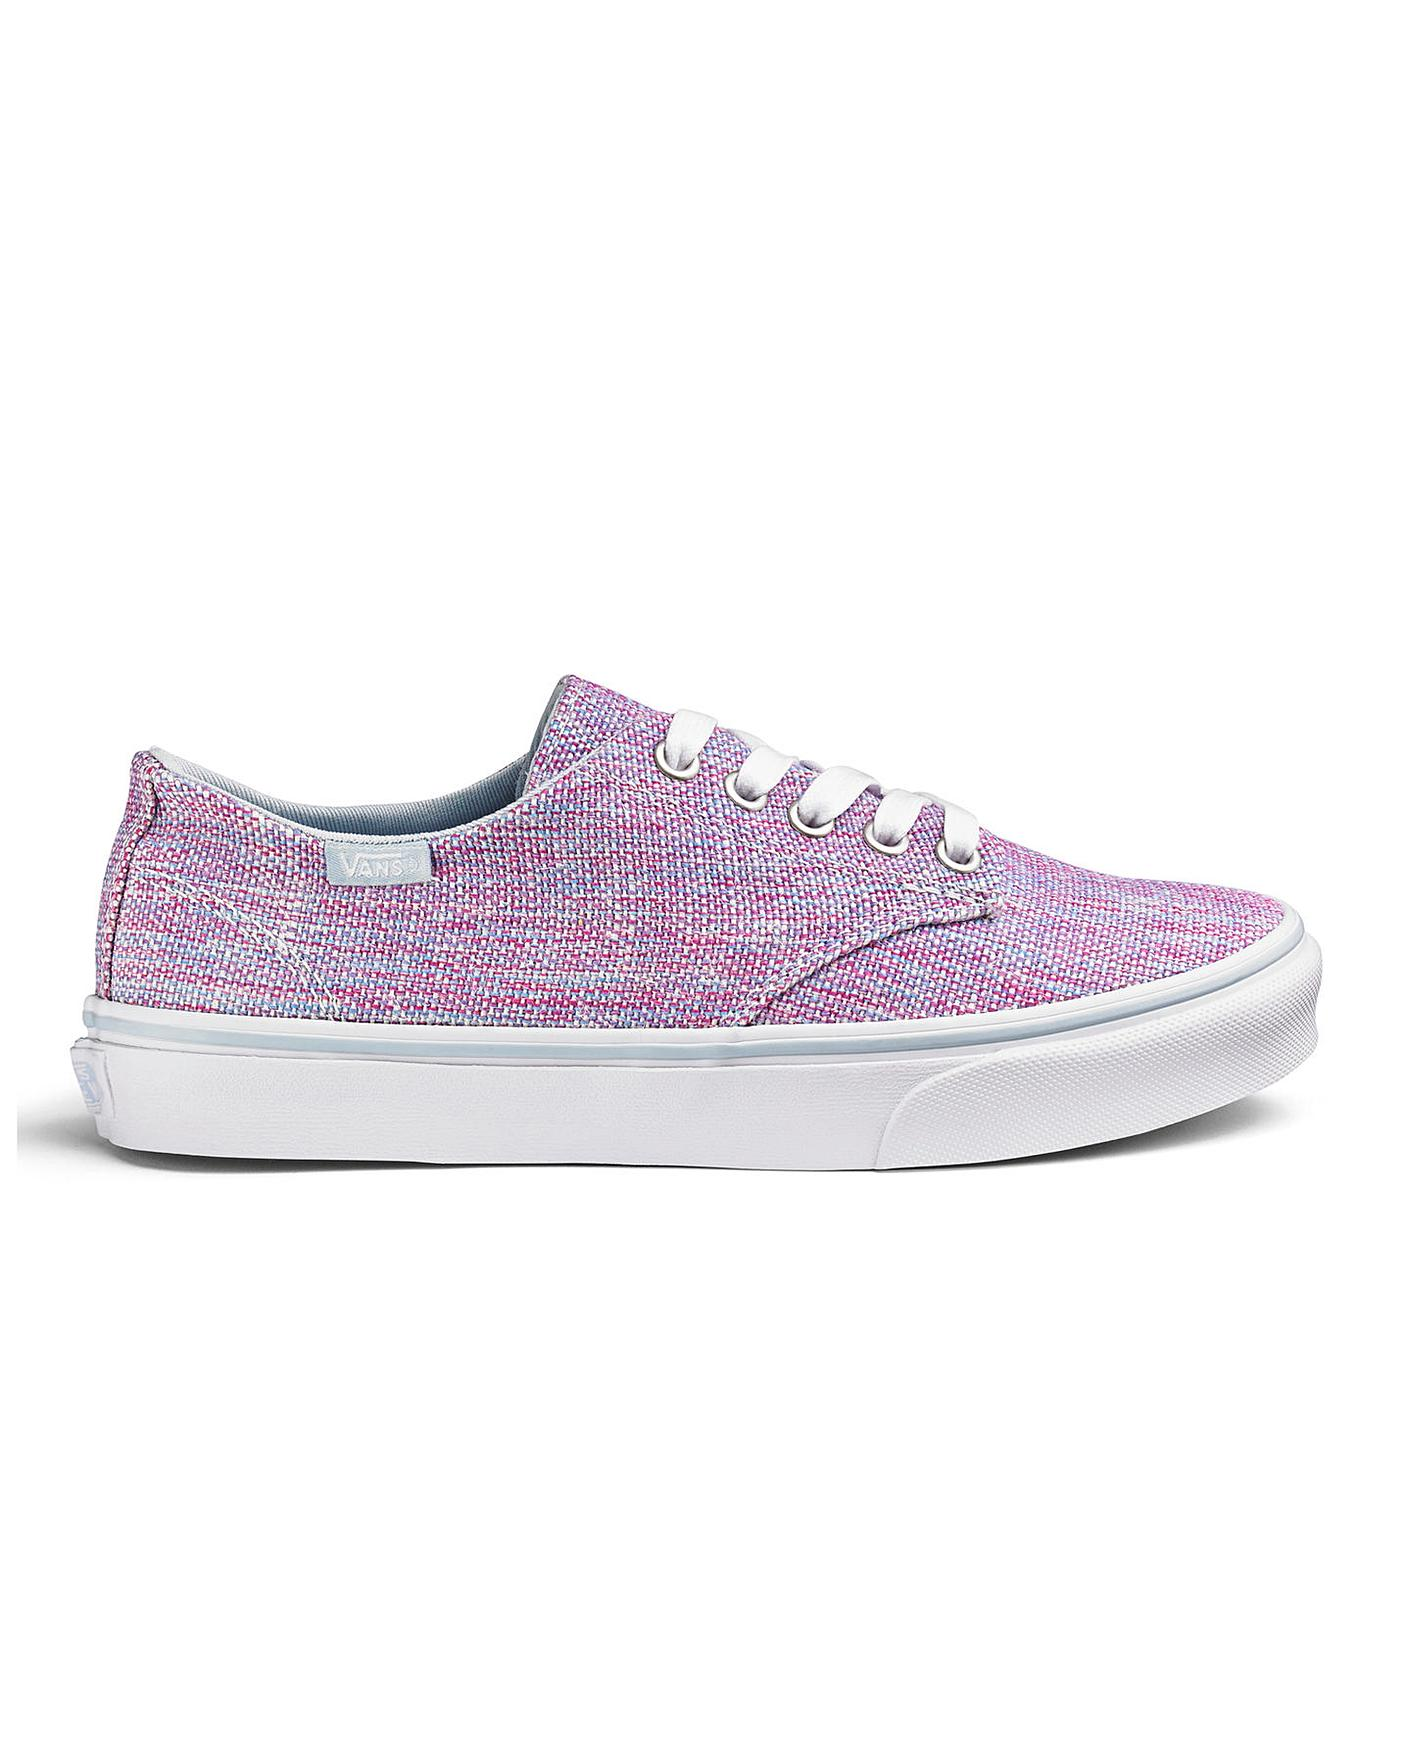 save up to 80% how to orders colours and striking Vans Camden Jute Ladies Trainers